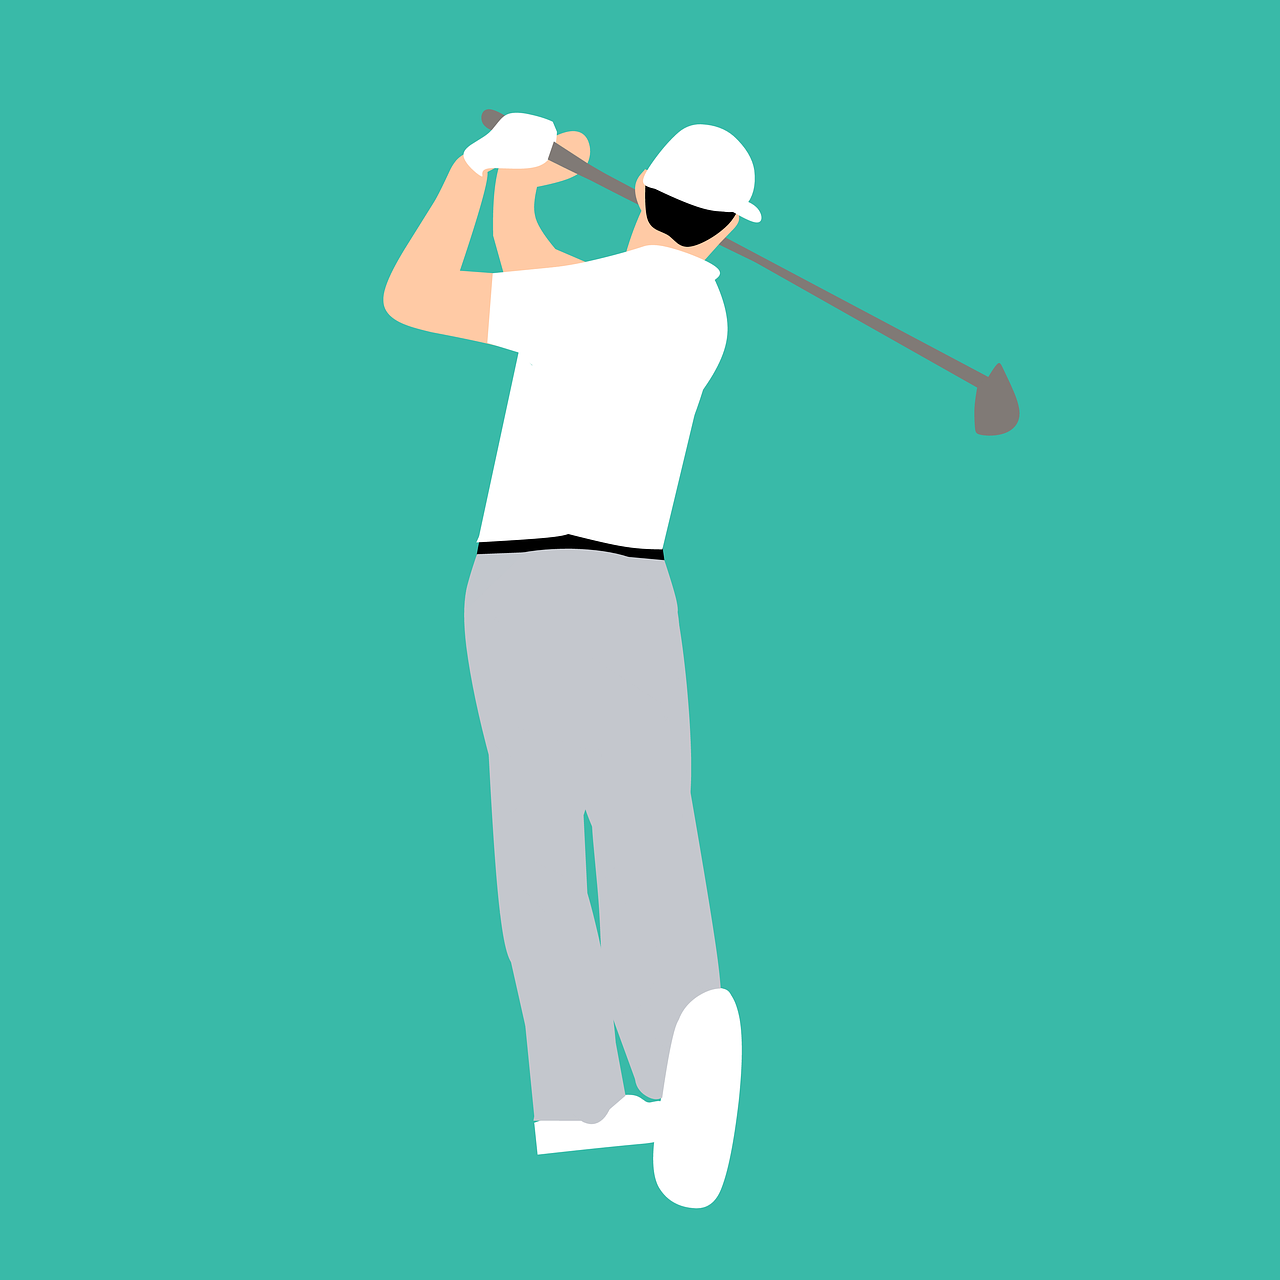 golf player playing free photo